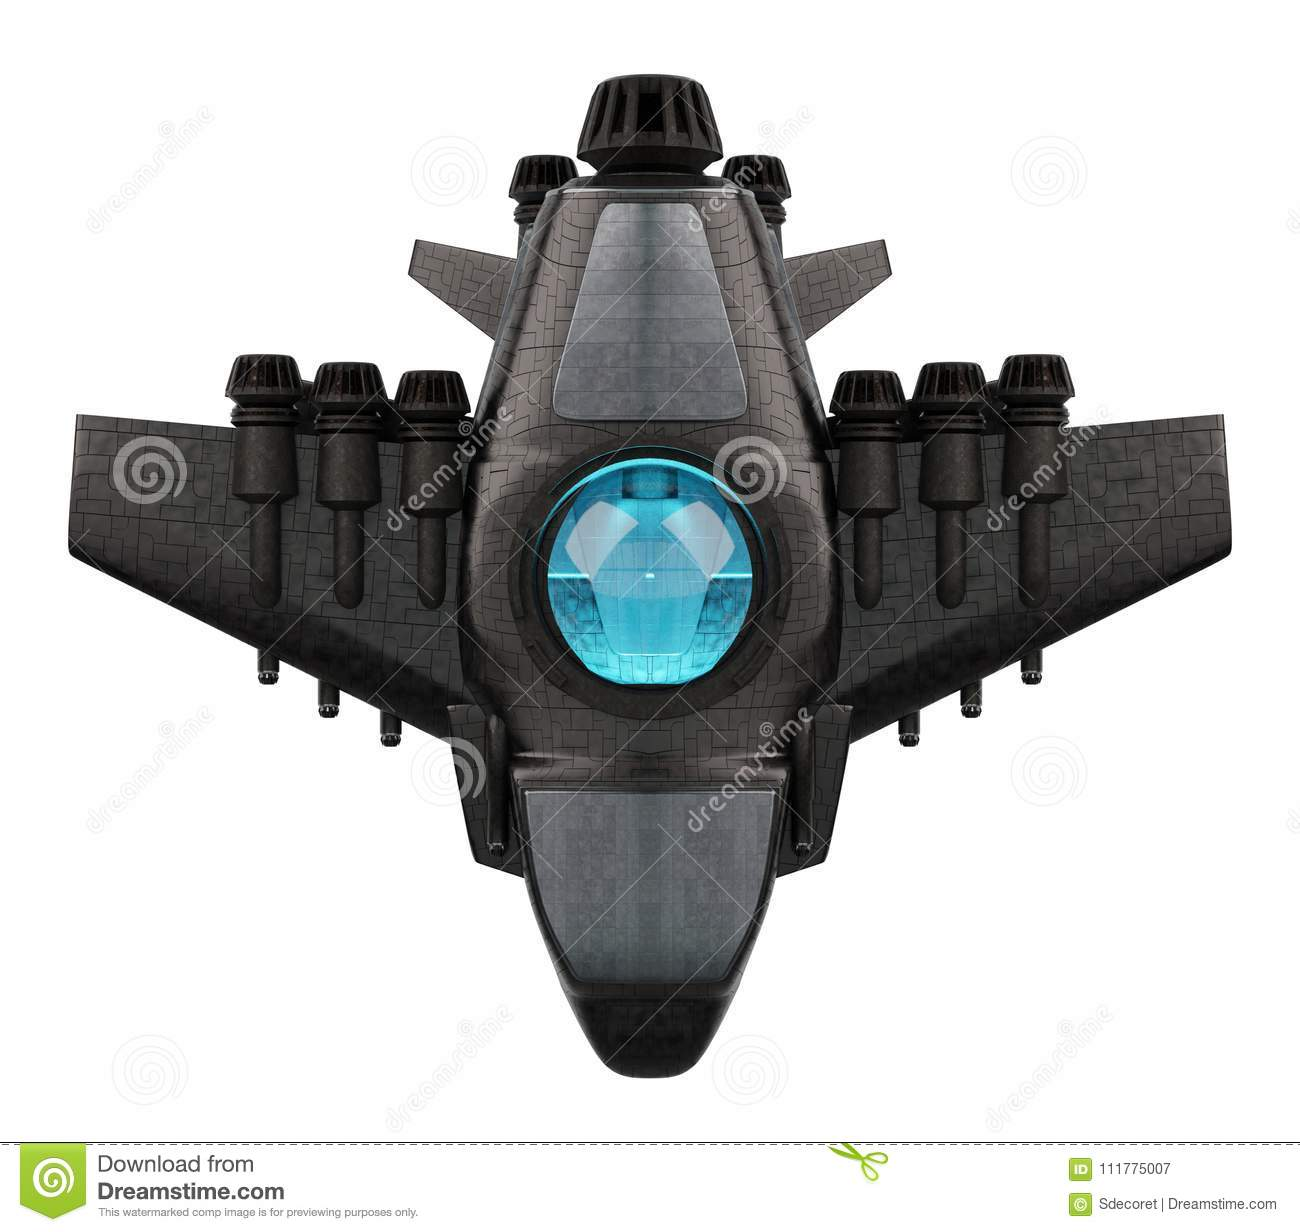 Futuristic spacecraft isolated on white background 3D rendering